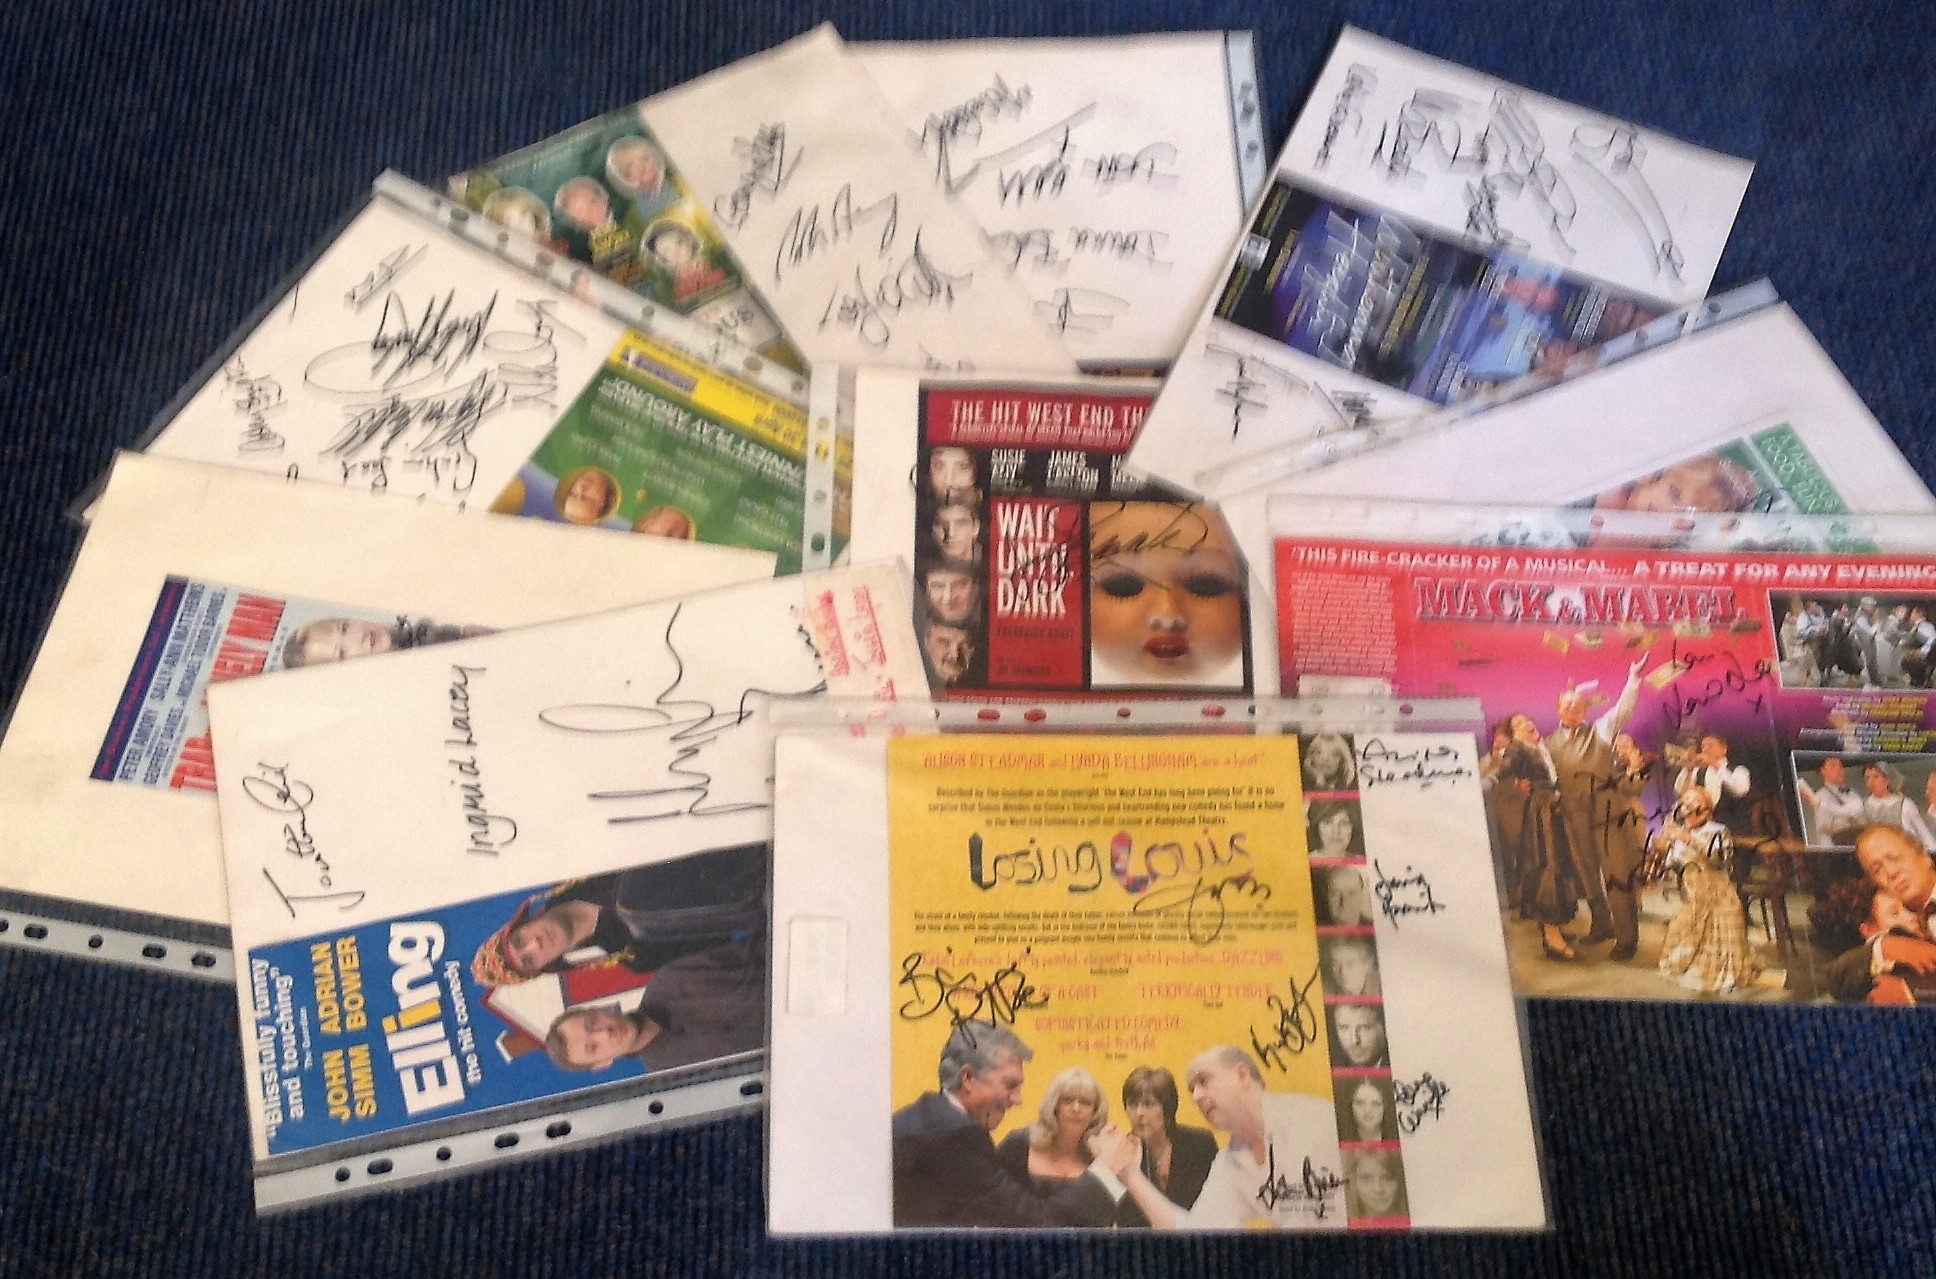 Lot 17 - Theatre flyer signed collection. 10 flyers included. Mostly multisigned. Some of signatures included